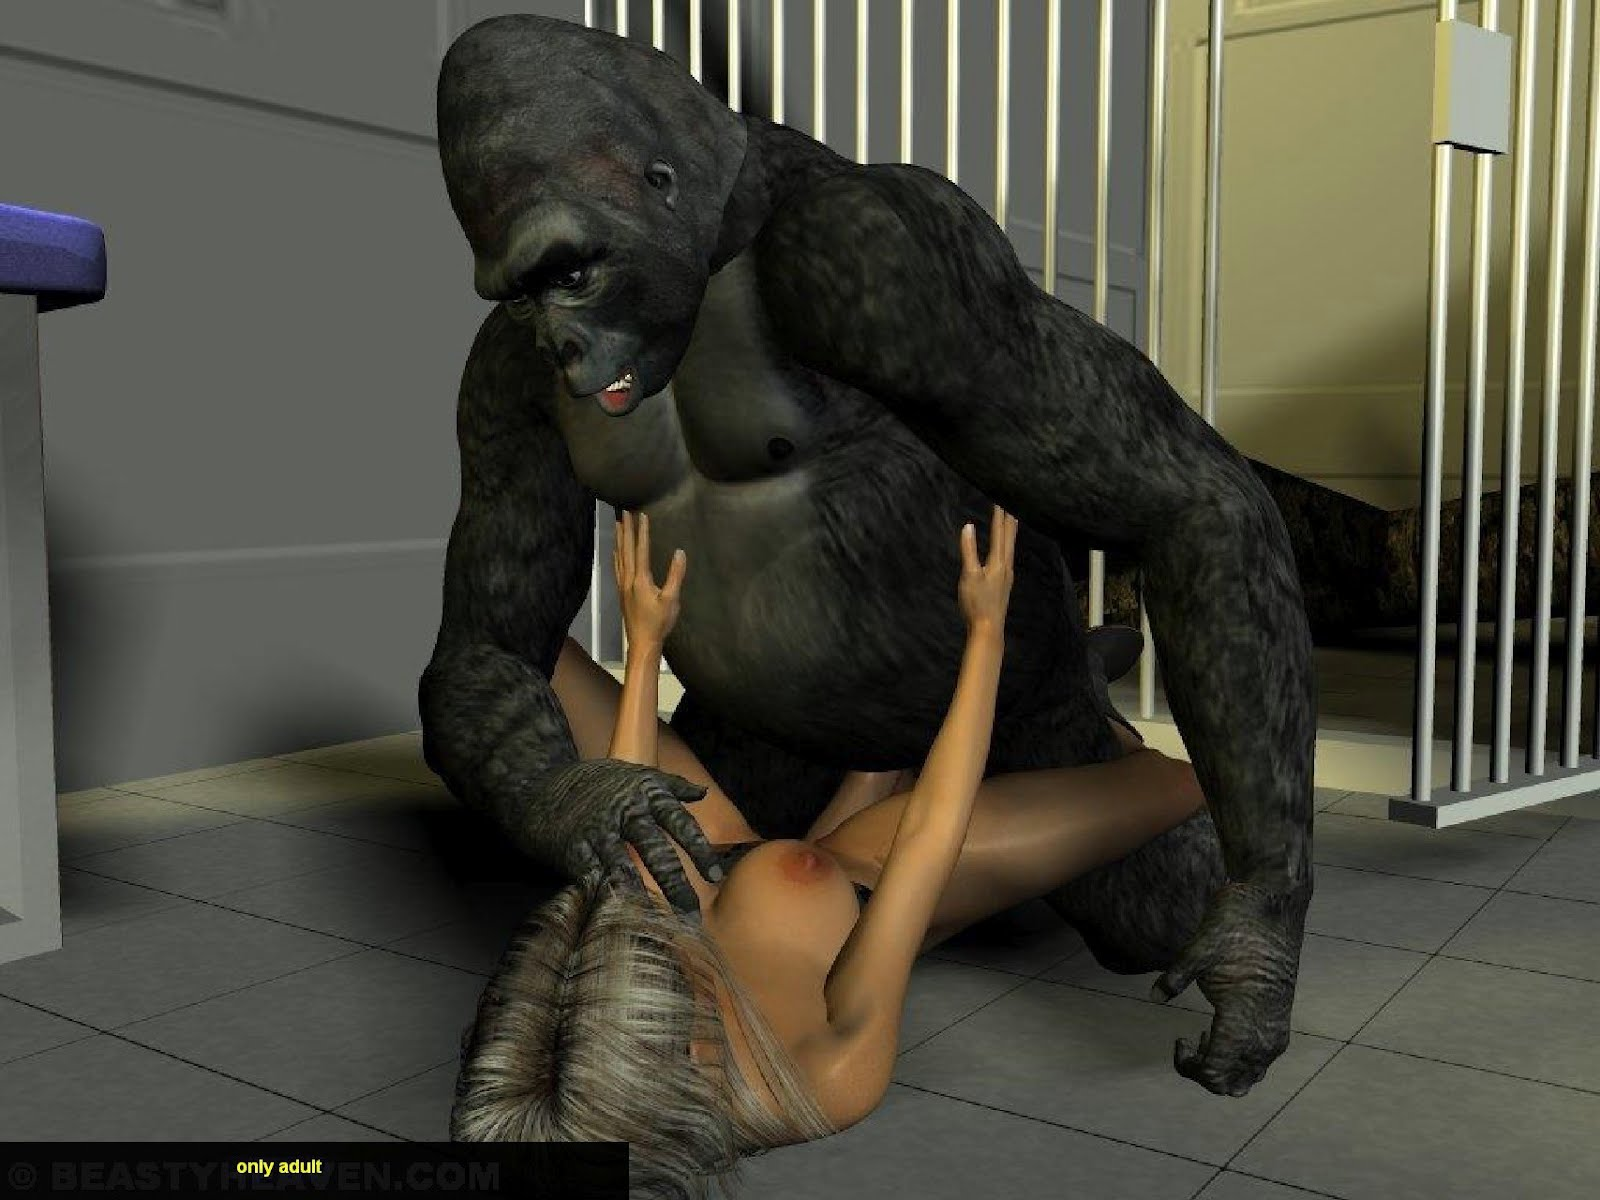 sex with a gorilla